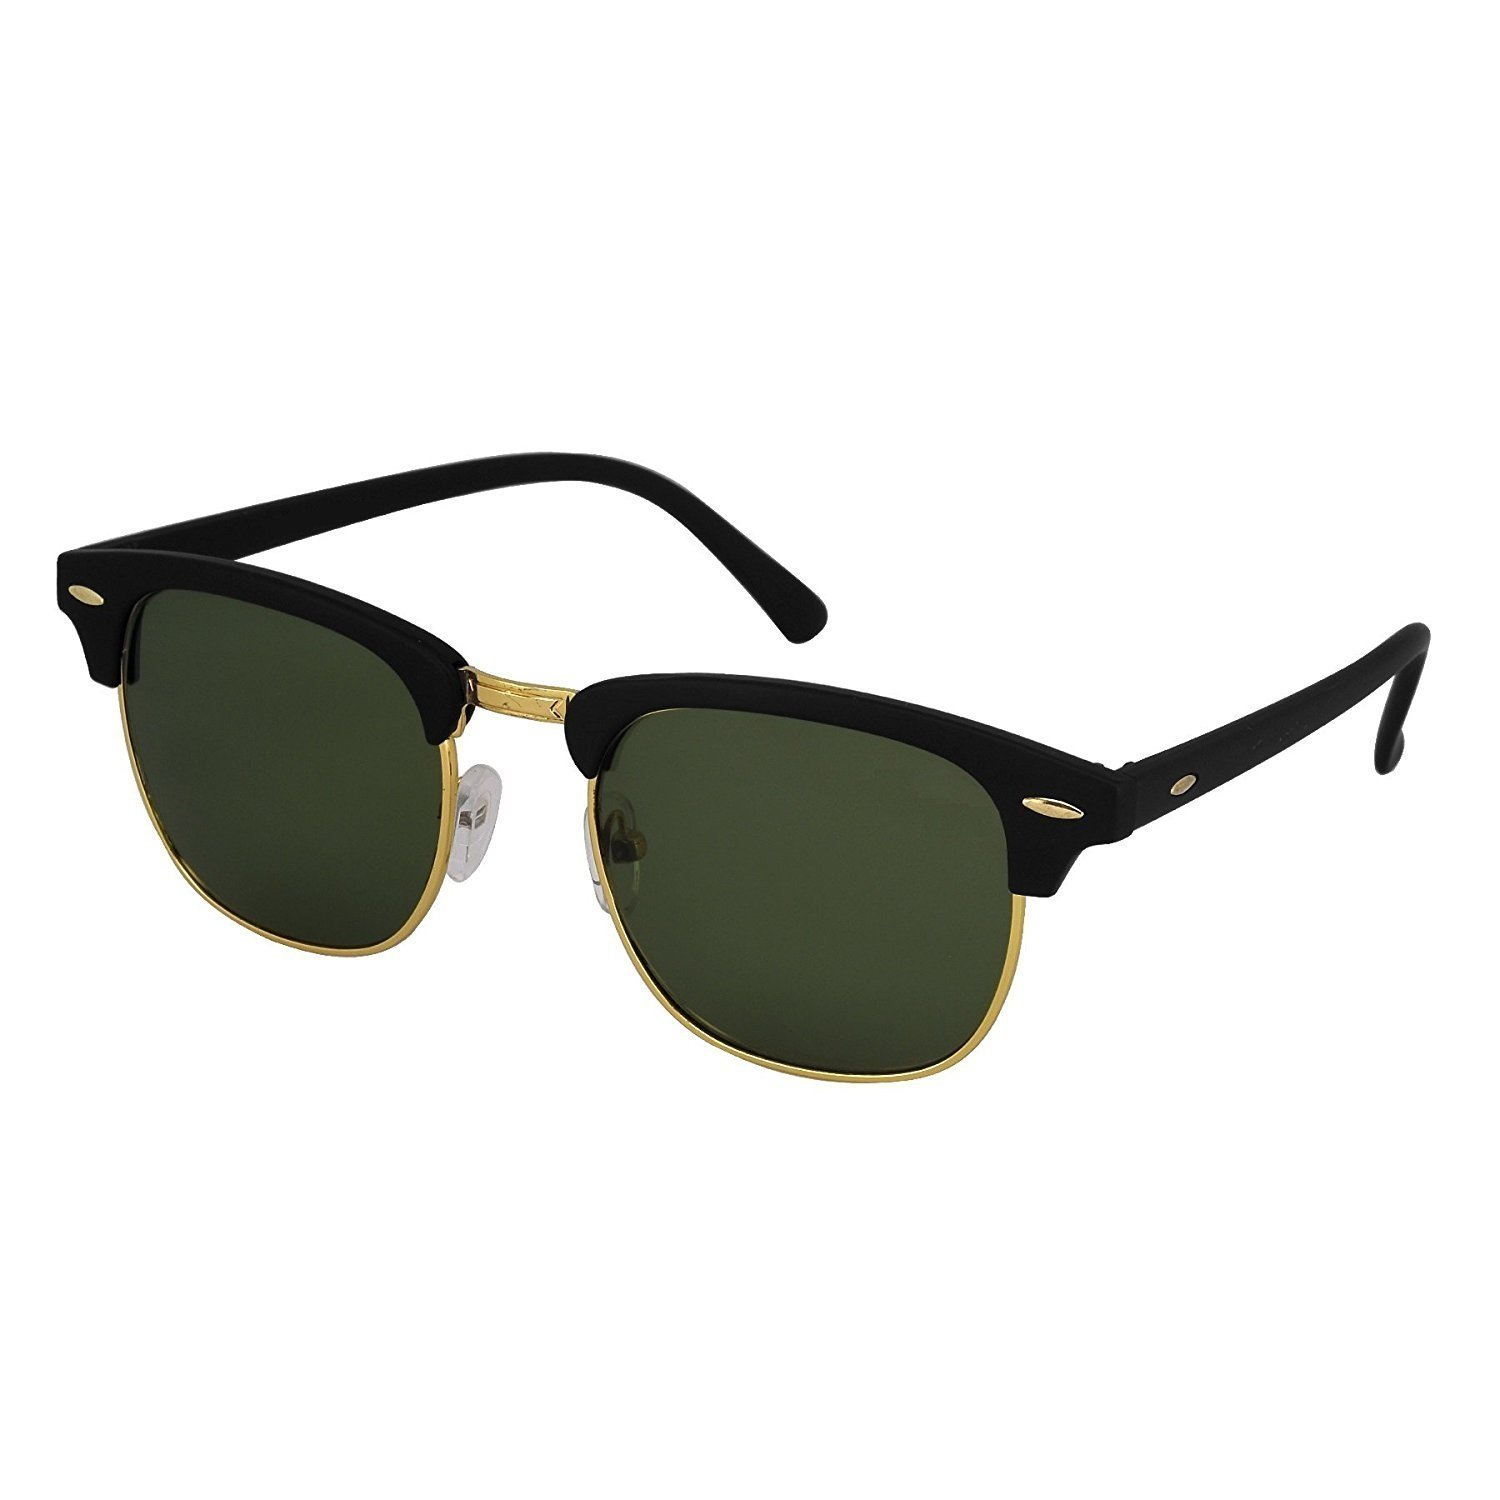 86fde0d017 SHADZ WAYFARER CLUBMASTER SUNGLASSES  Amazon.in  Clothing   Accessories